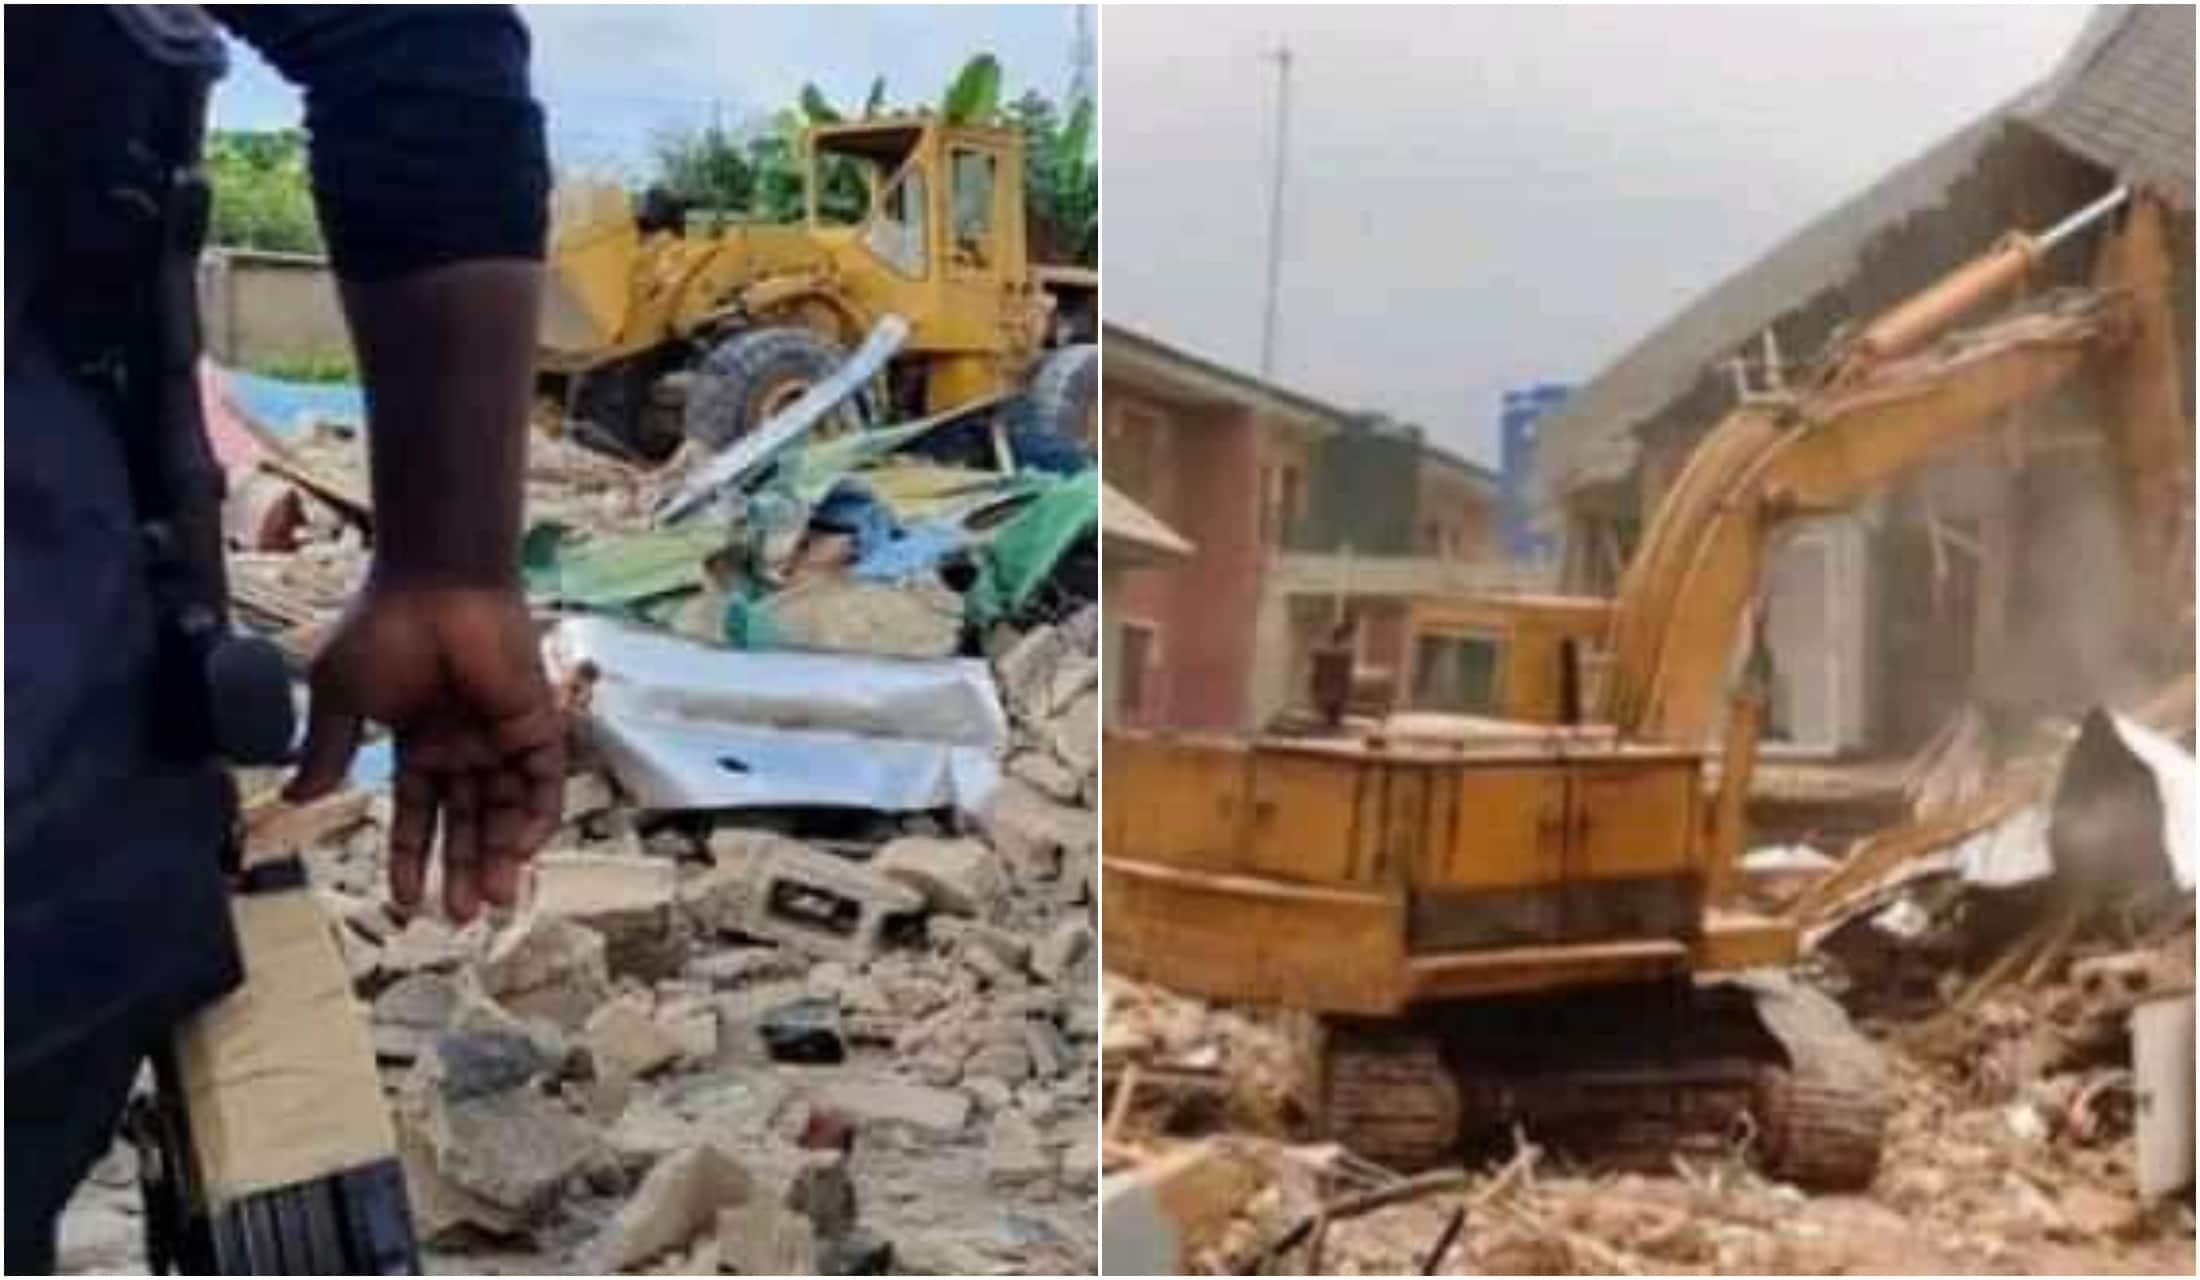 Nigerian airforce demolishes over 100 houses in Benue over 'land dispute'